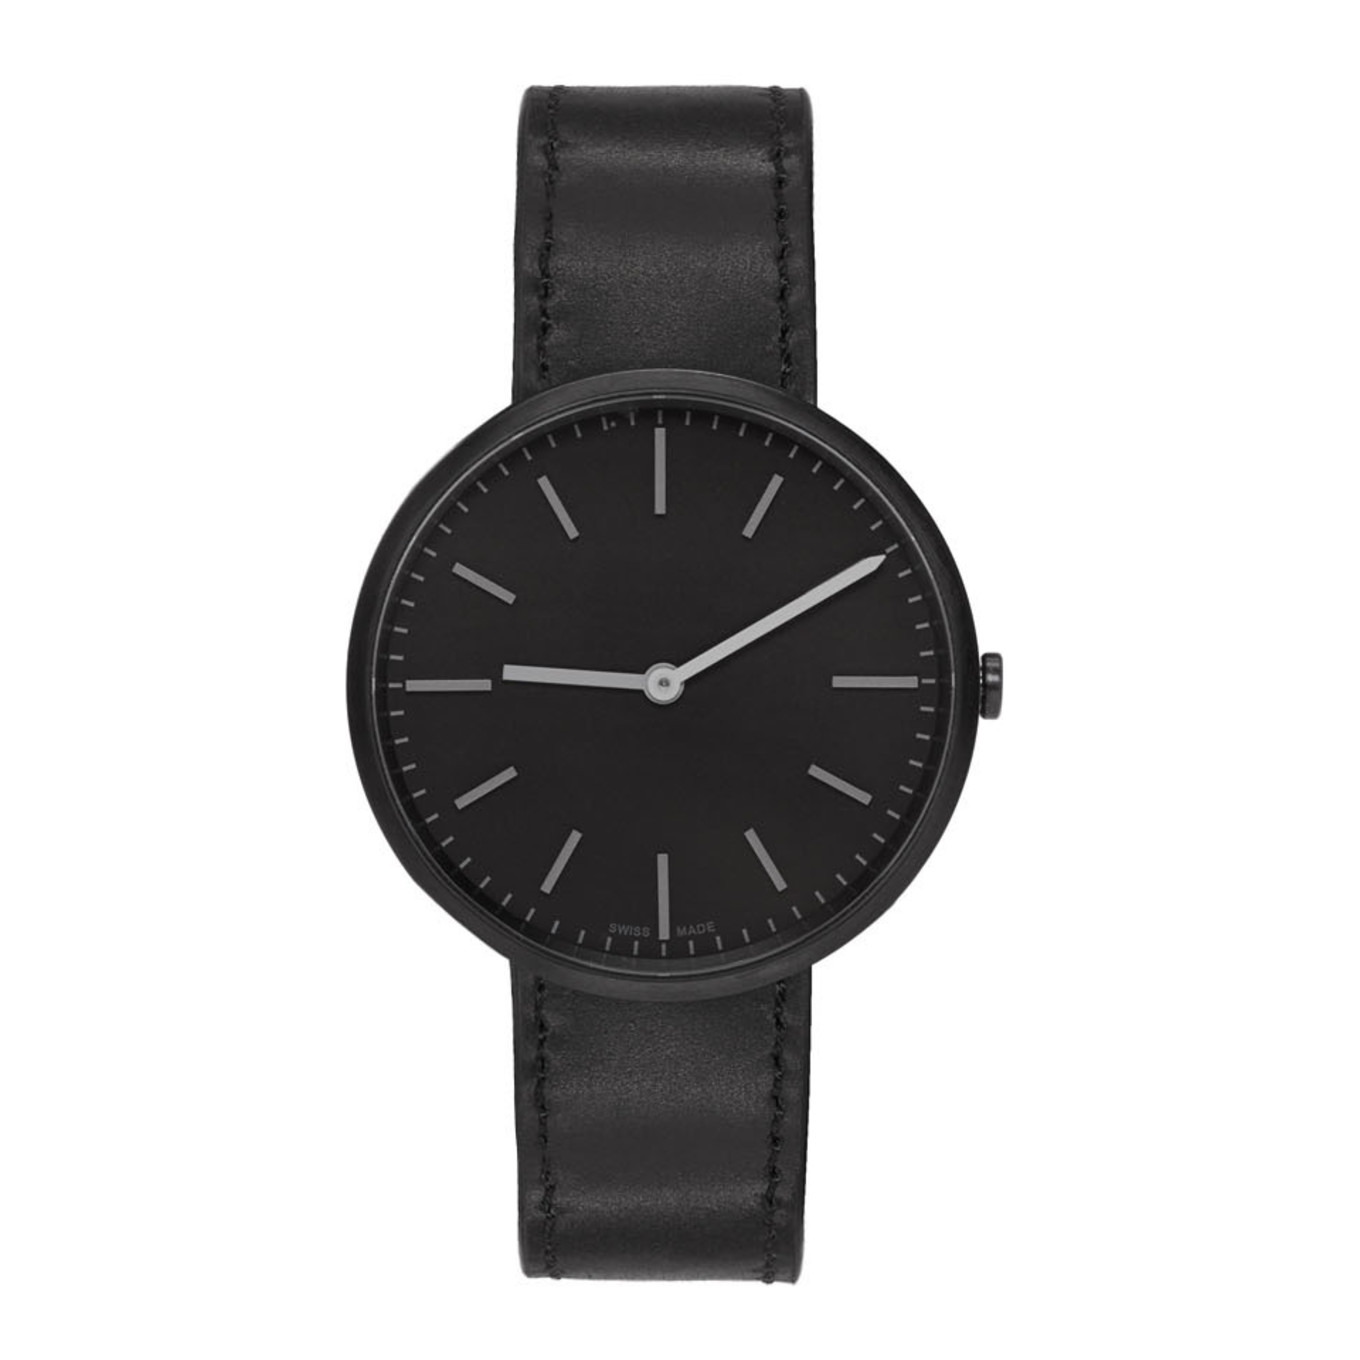 Gunmetal & Black Leather M37 Two Hand Watch by Uniform Wares